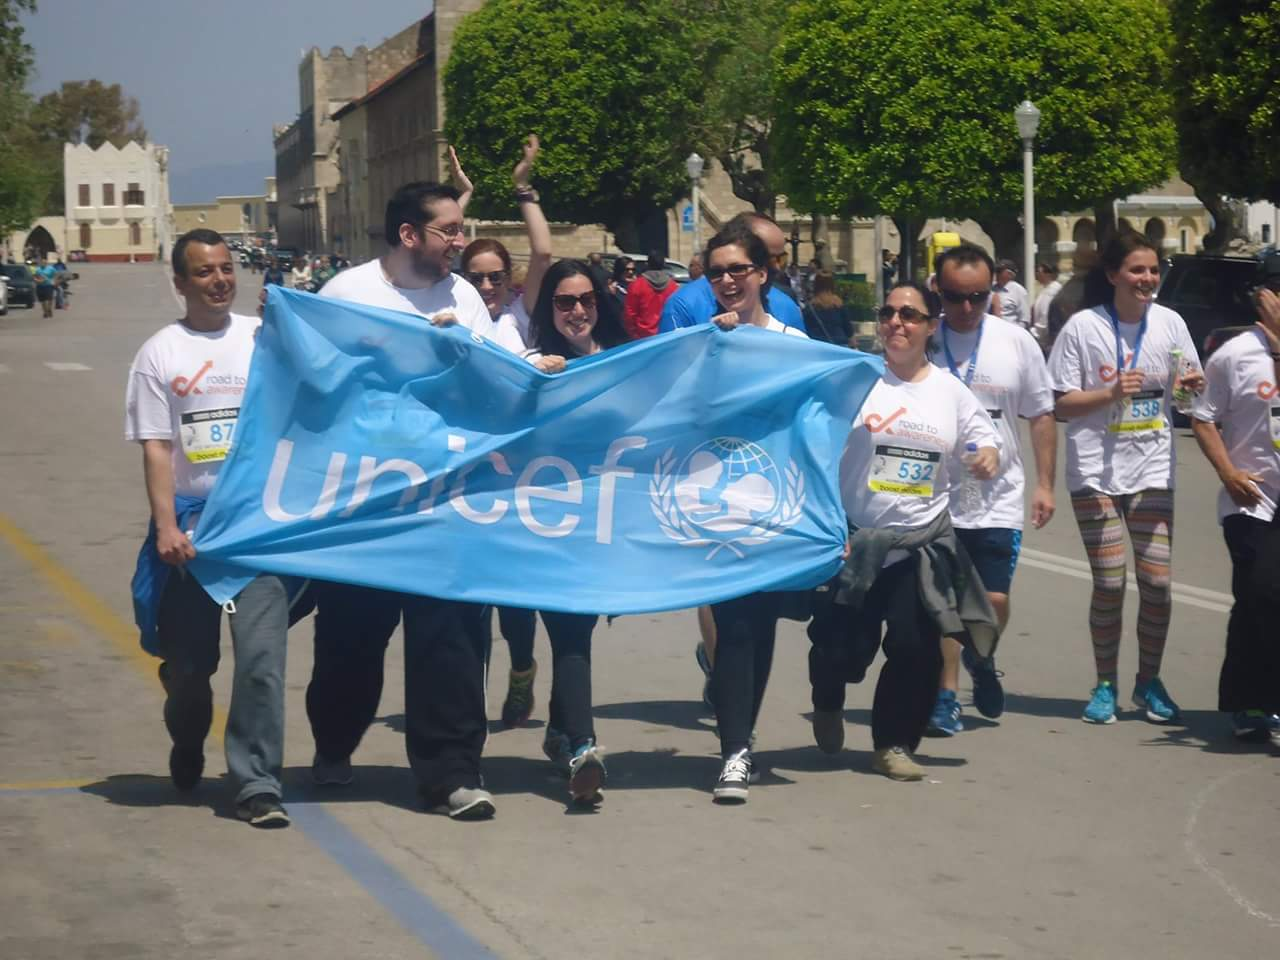 Roads to Rhodes Marathon participating associates team of Sheraton Rhodes Resort in support of Unicef and Road2Awareness project (1)